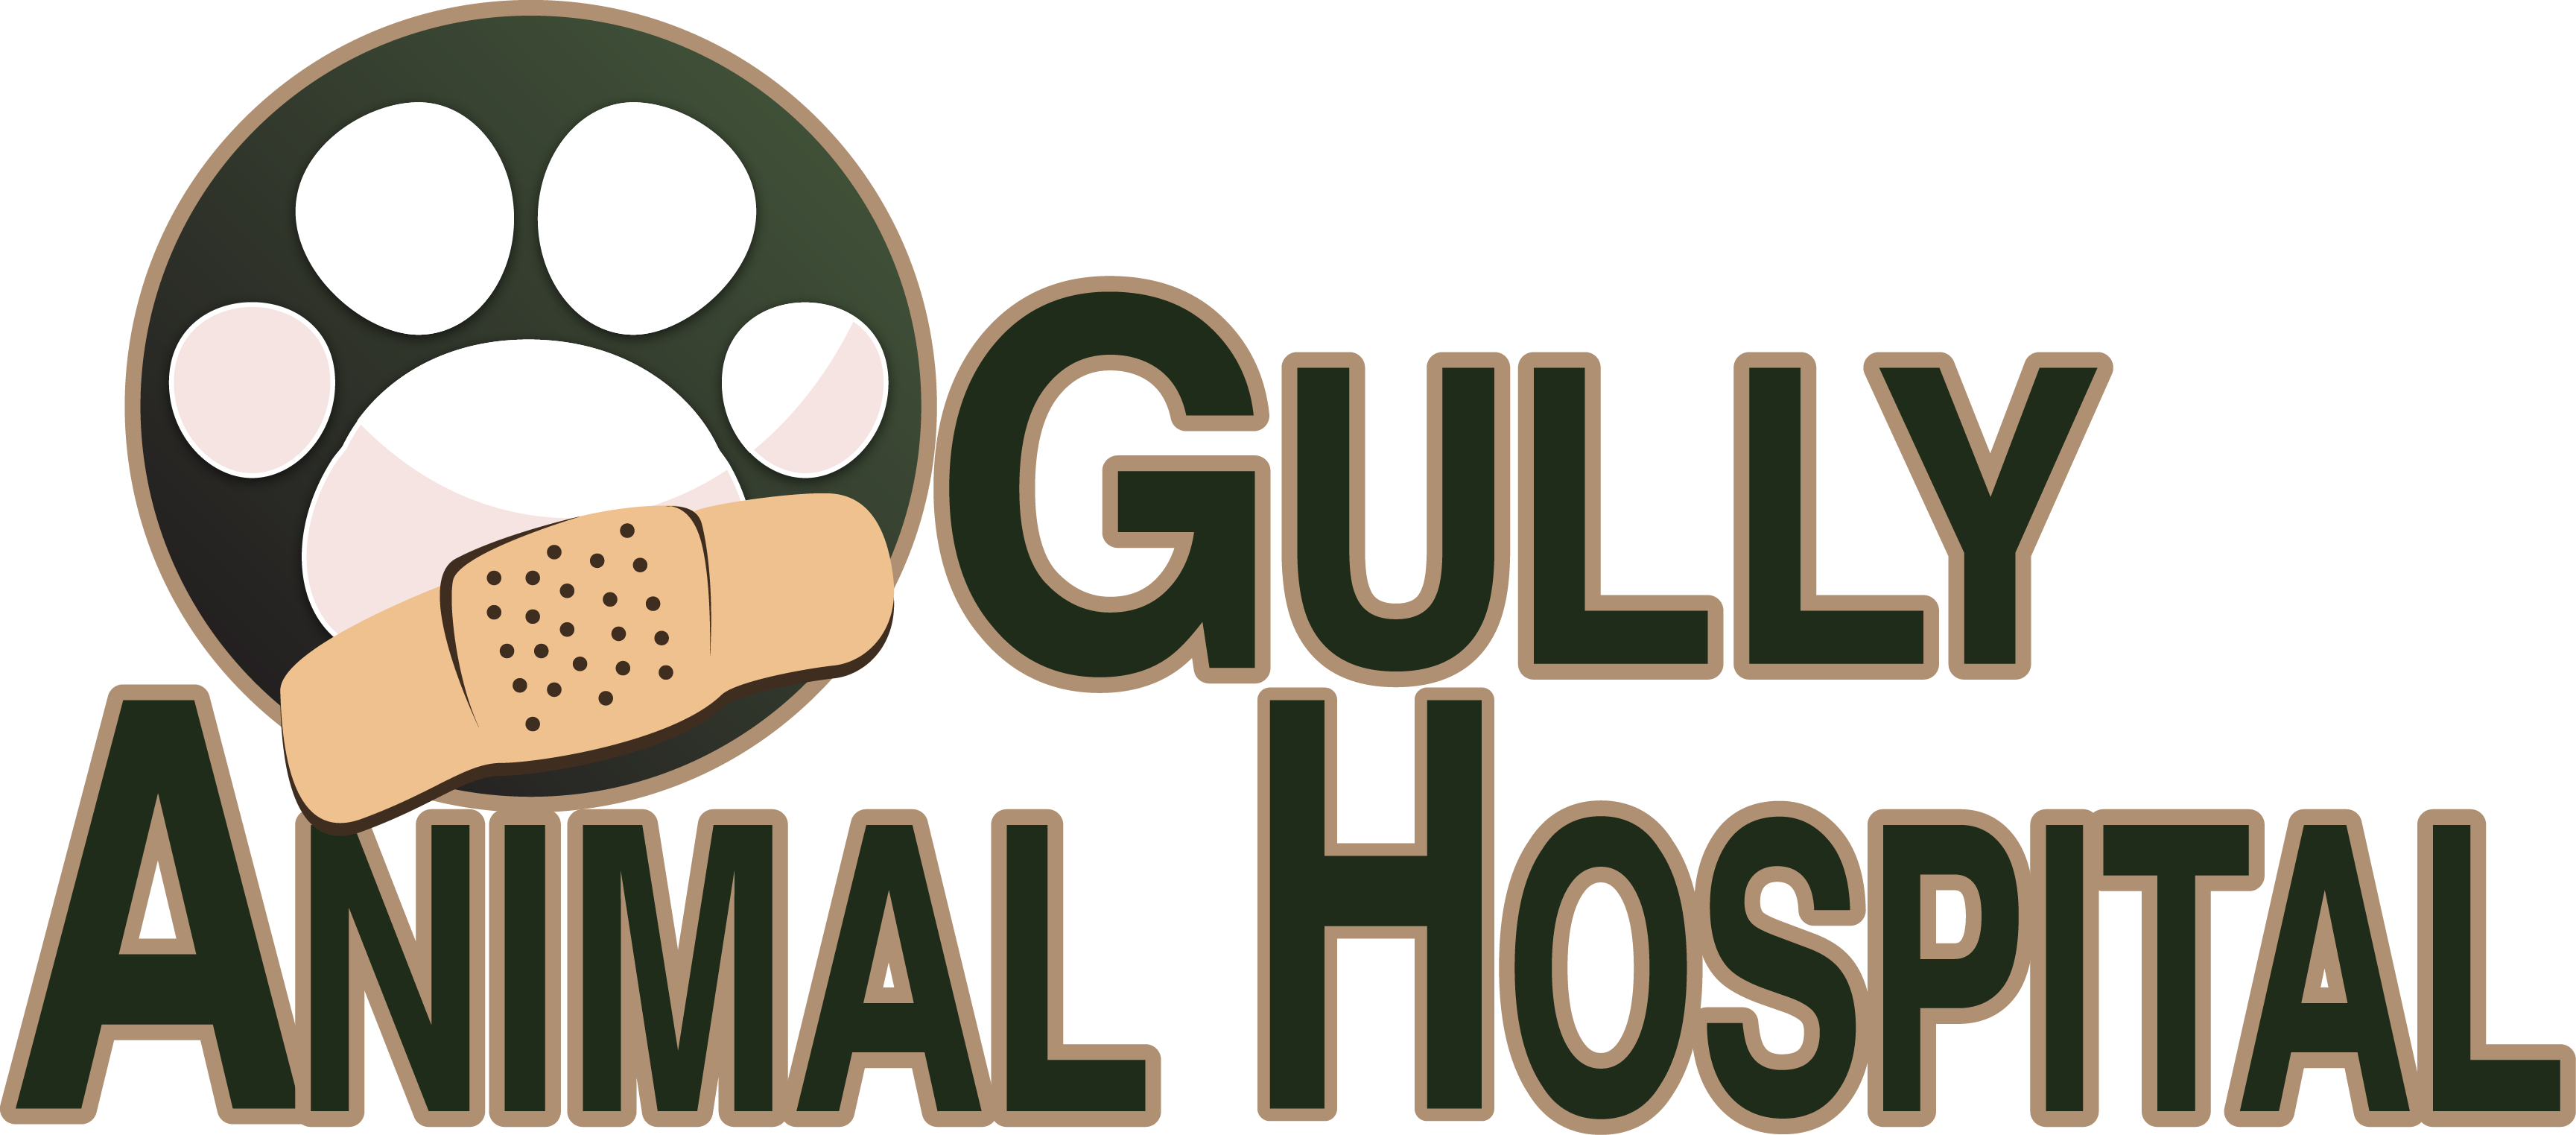 Watch the job video below to learn more about the career opening Video Not Found at Gully Animal Hospital in